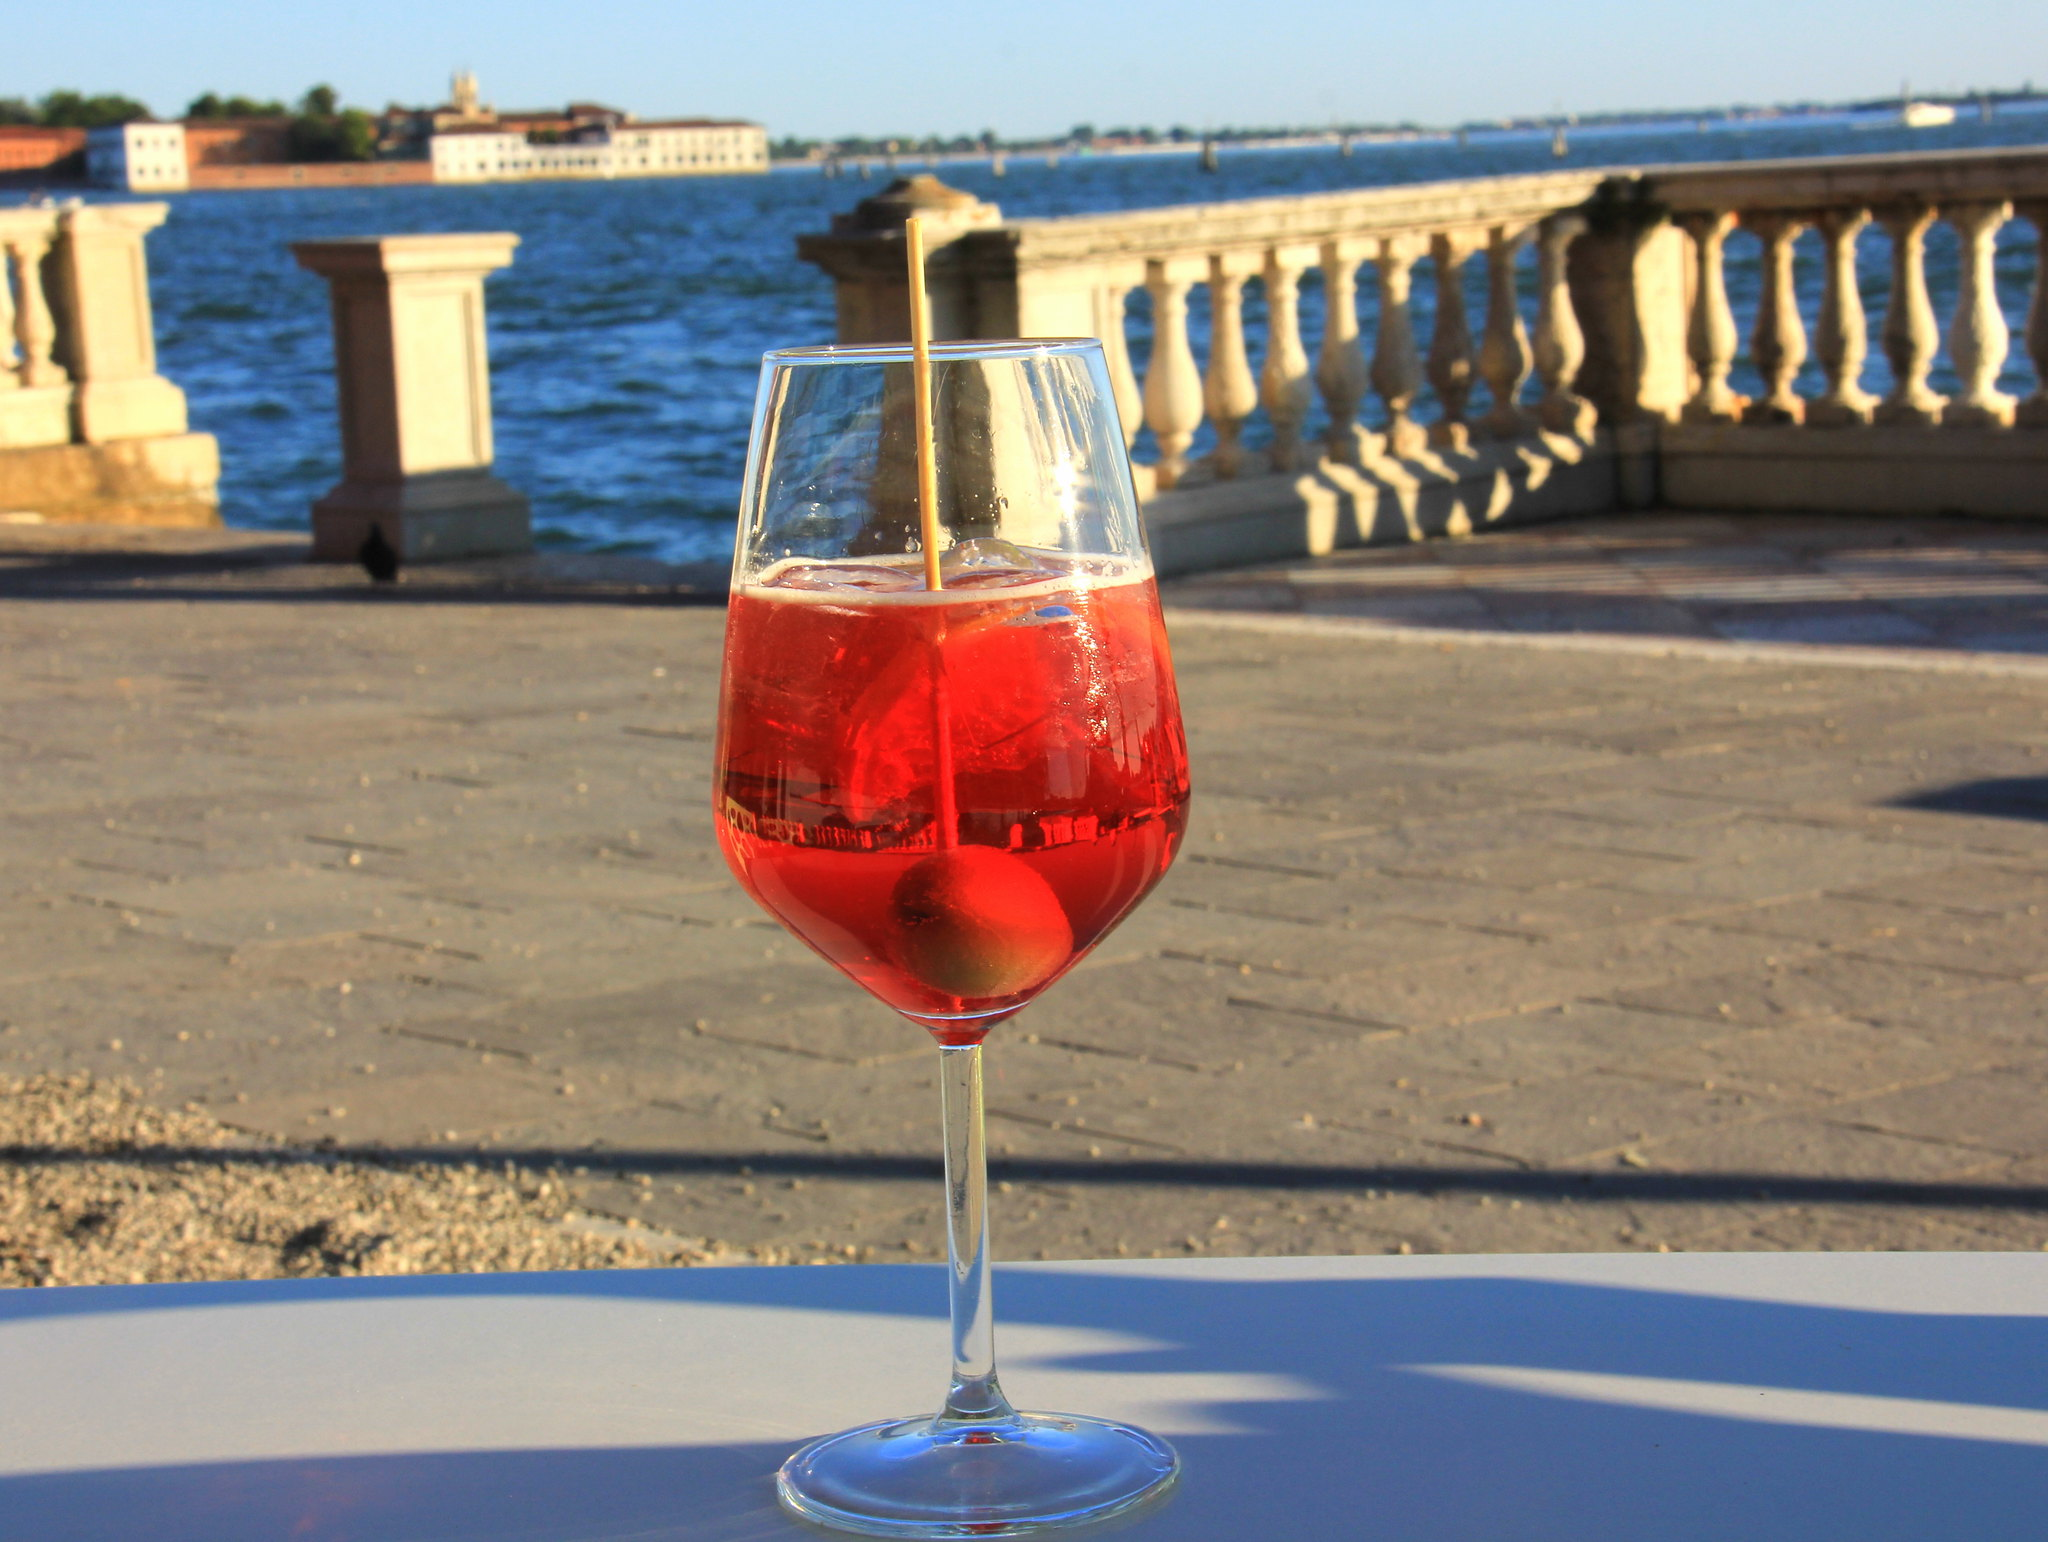 Don't forget to try spritz on your Venice trip